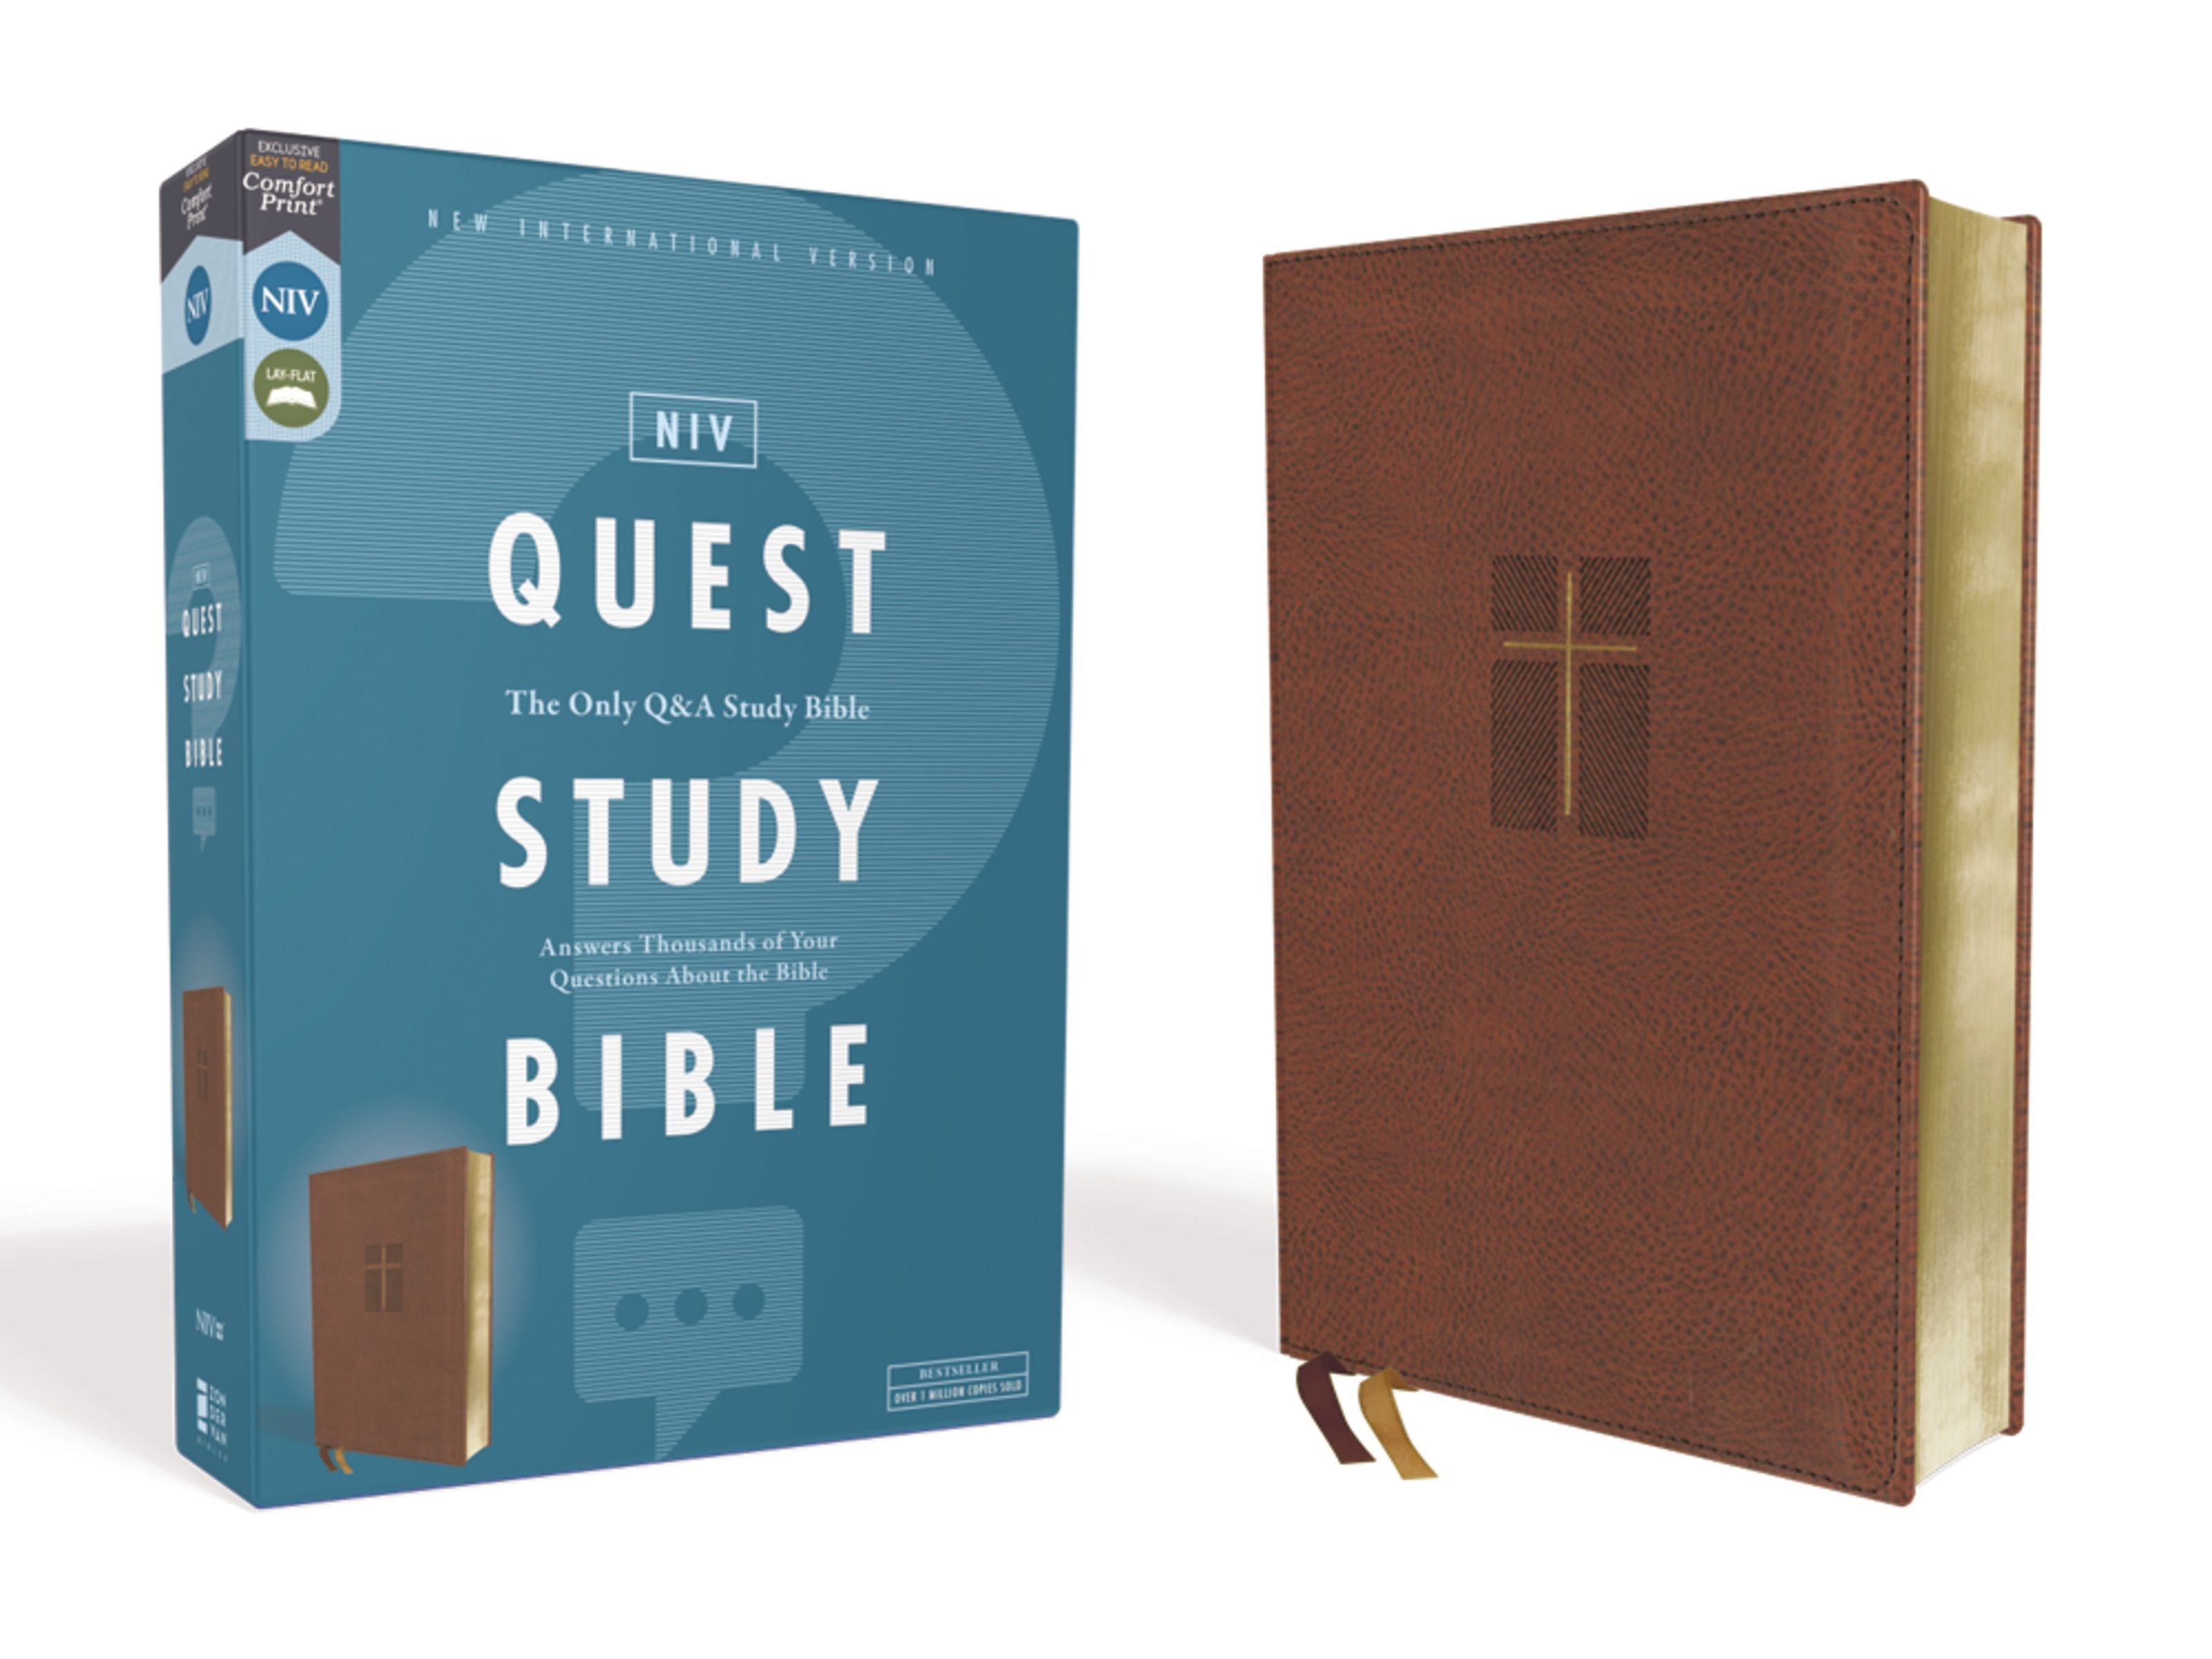 NIV Quest Study Bible (Comfort Print)-Brown Leathersoft